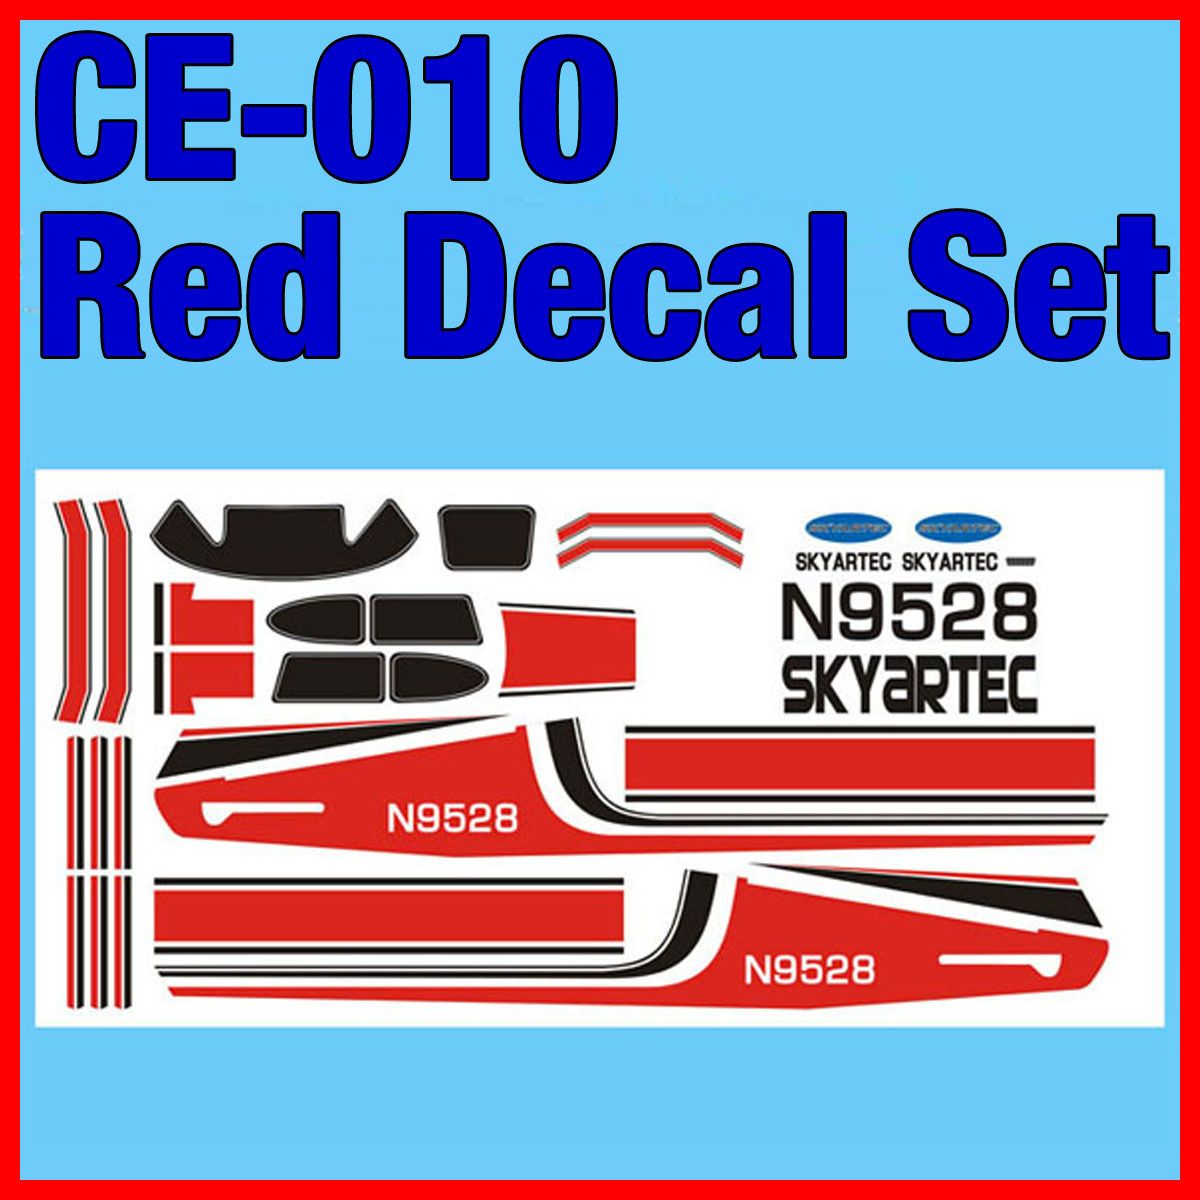 Skyartec 5ch Cessna 182 Rc Airplane Parts Red Decal Set Sticker Ce 010 010 Plane Rc Airplanes Cessna Decals [ 1200 x 1200 Pixel ]